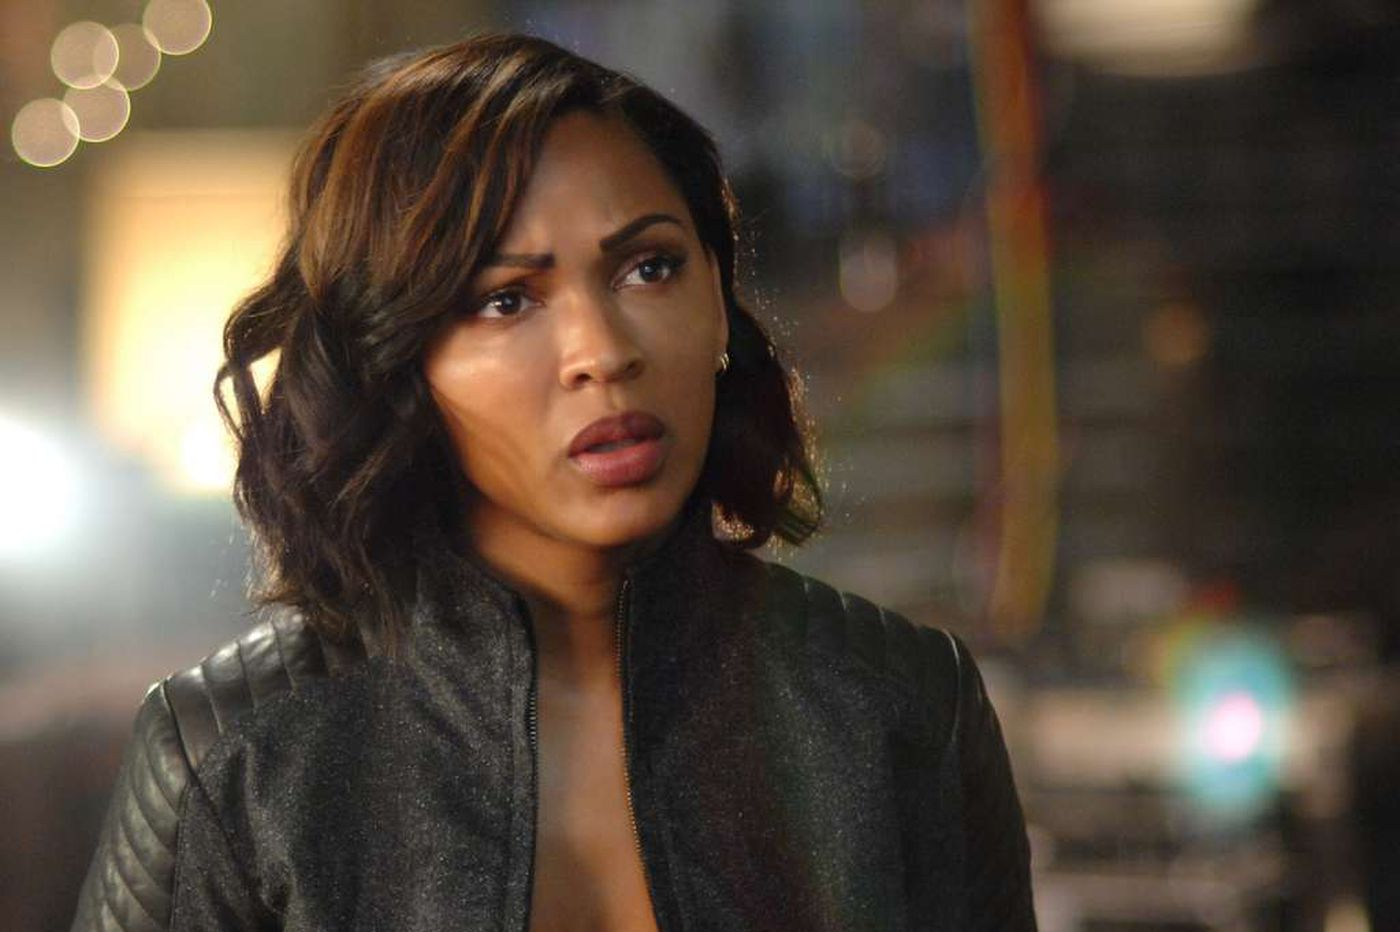 Lifetime movie starring Meagan Good filming in South Jersey